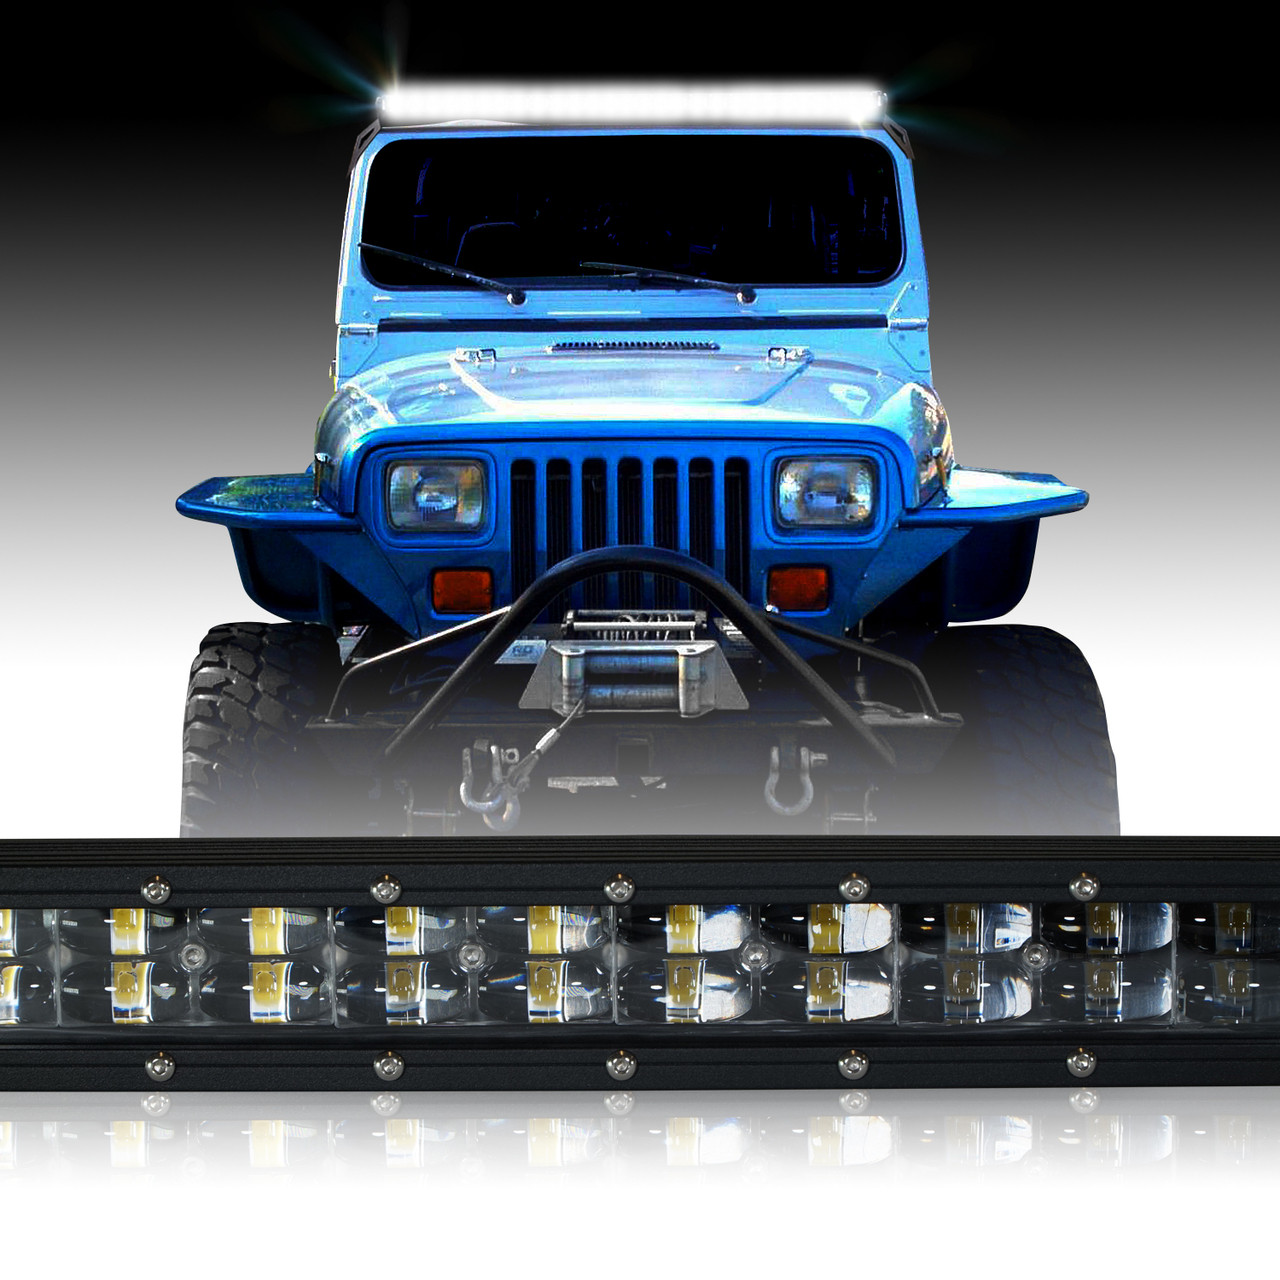 led light bar 288w 50 inches bracket wiring harness kit for wrangler yj 1987 1995 [ 1280 x 1280 Pixel ]